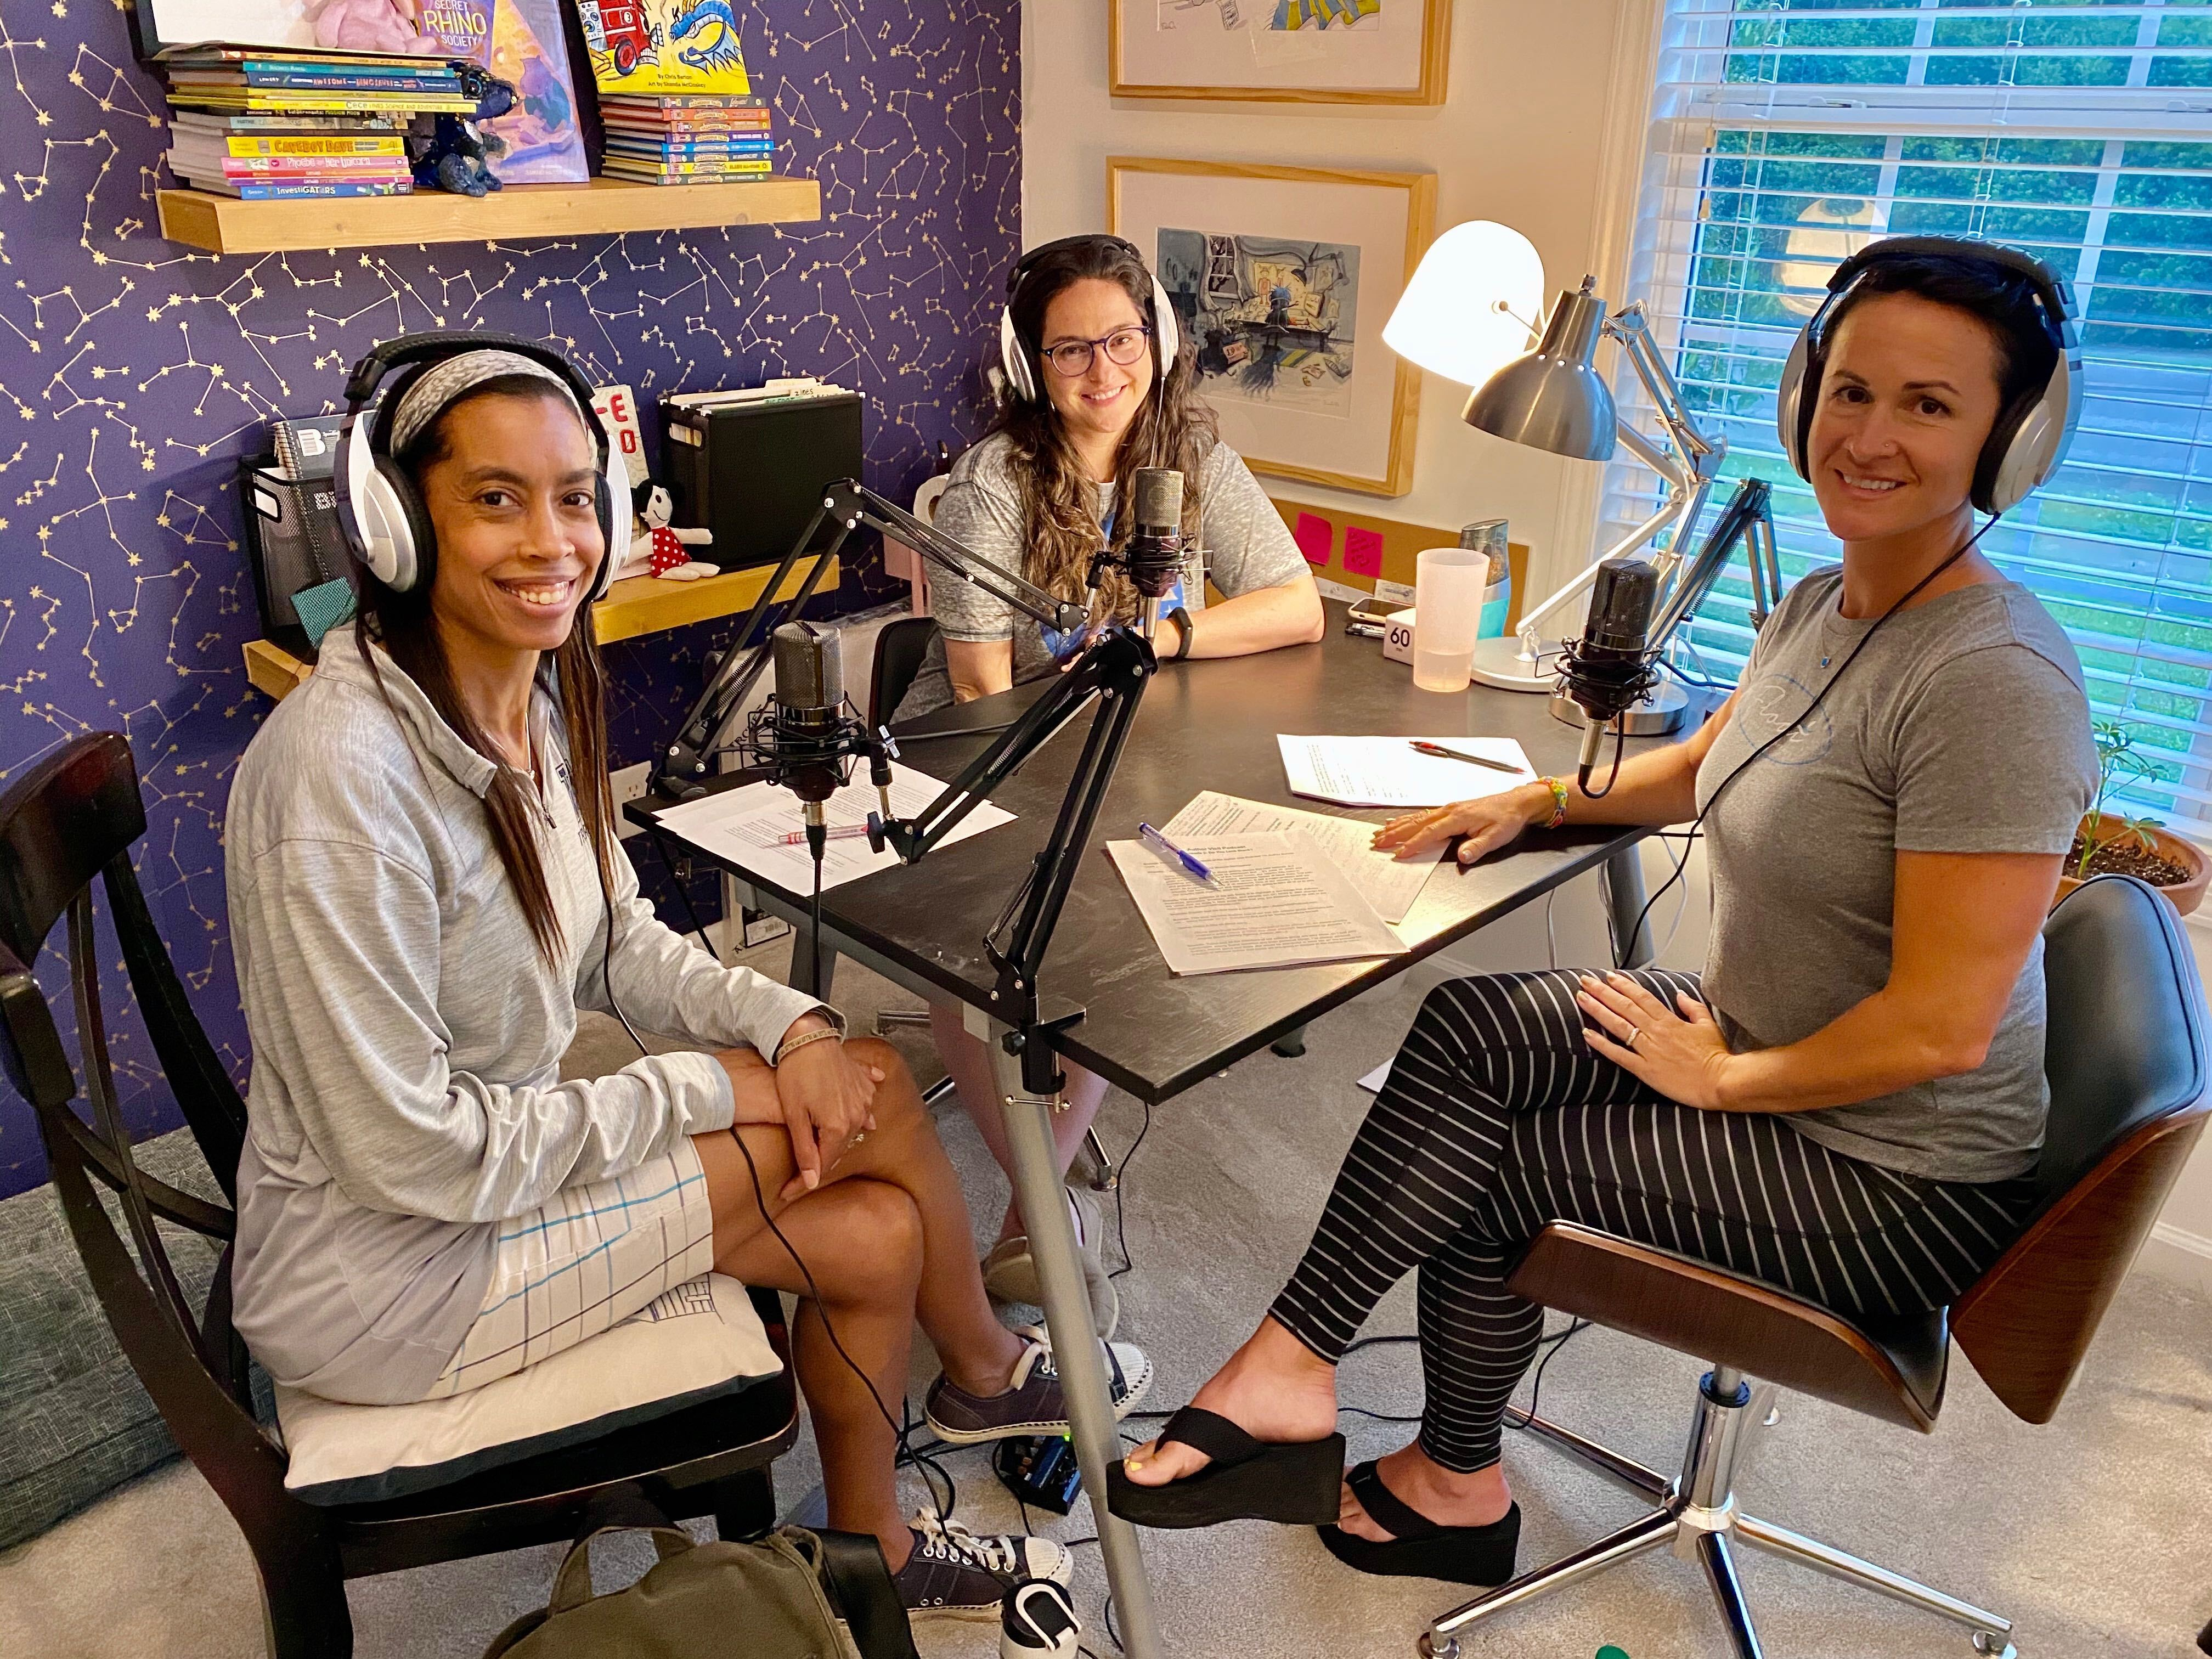 Tosha (T.L.) Sumner, Shanda McCloskey, and Bonnie Clark getting ready to record the podcast episode 2.